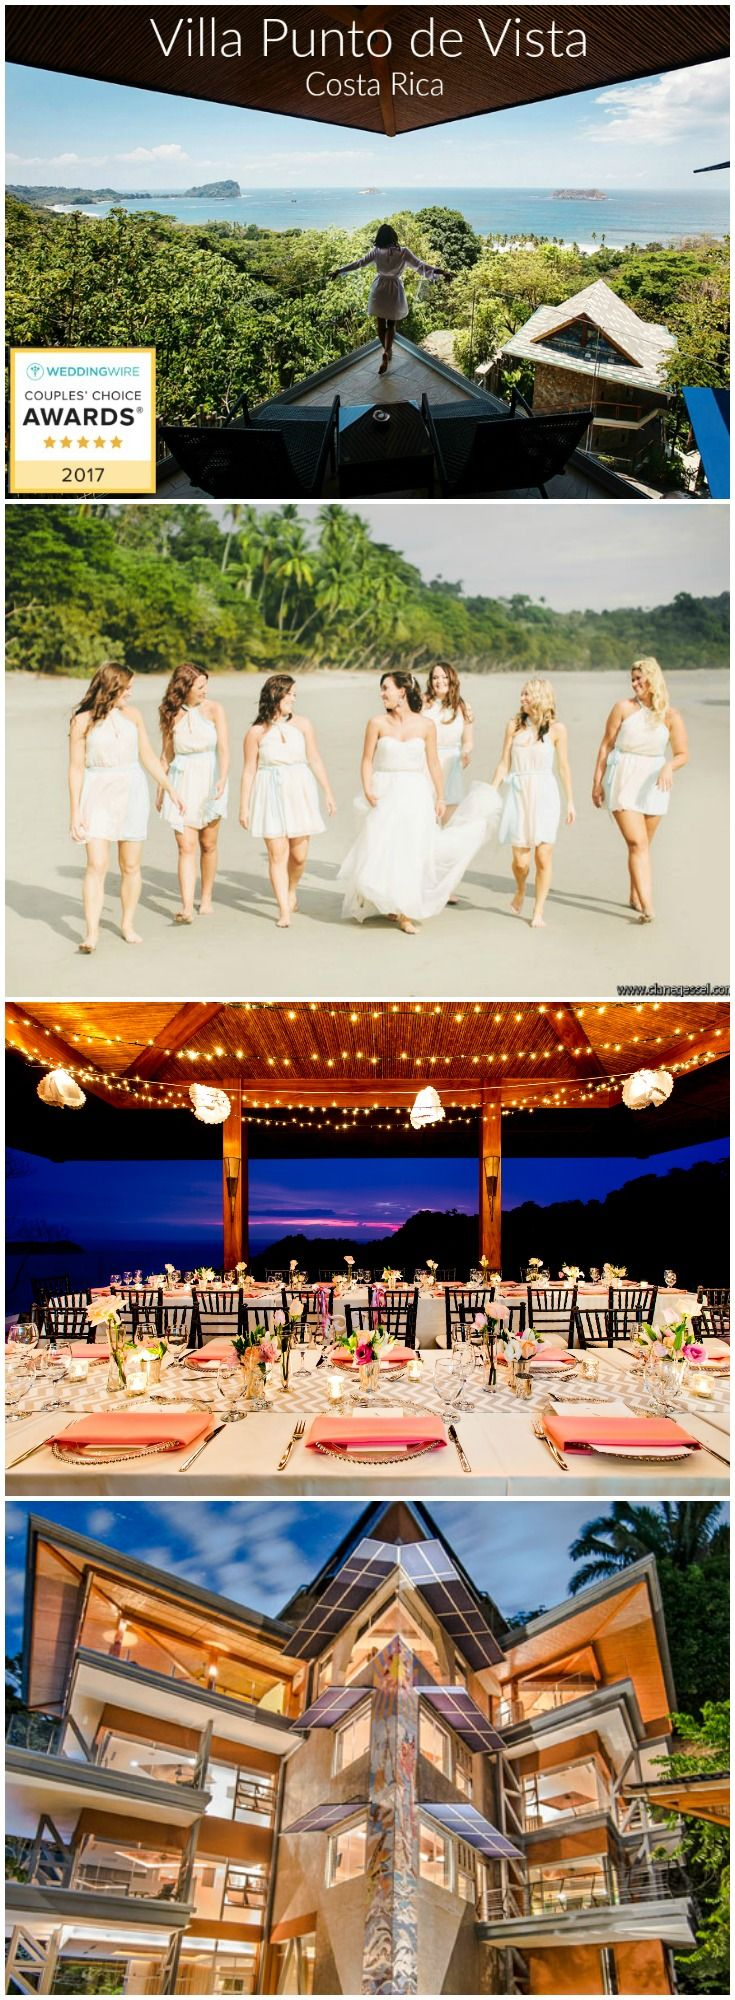 632 best costa rica wedding ideas images on pinterest for Destination wedding location ideas